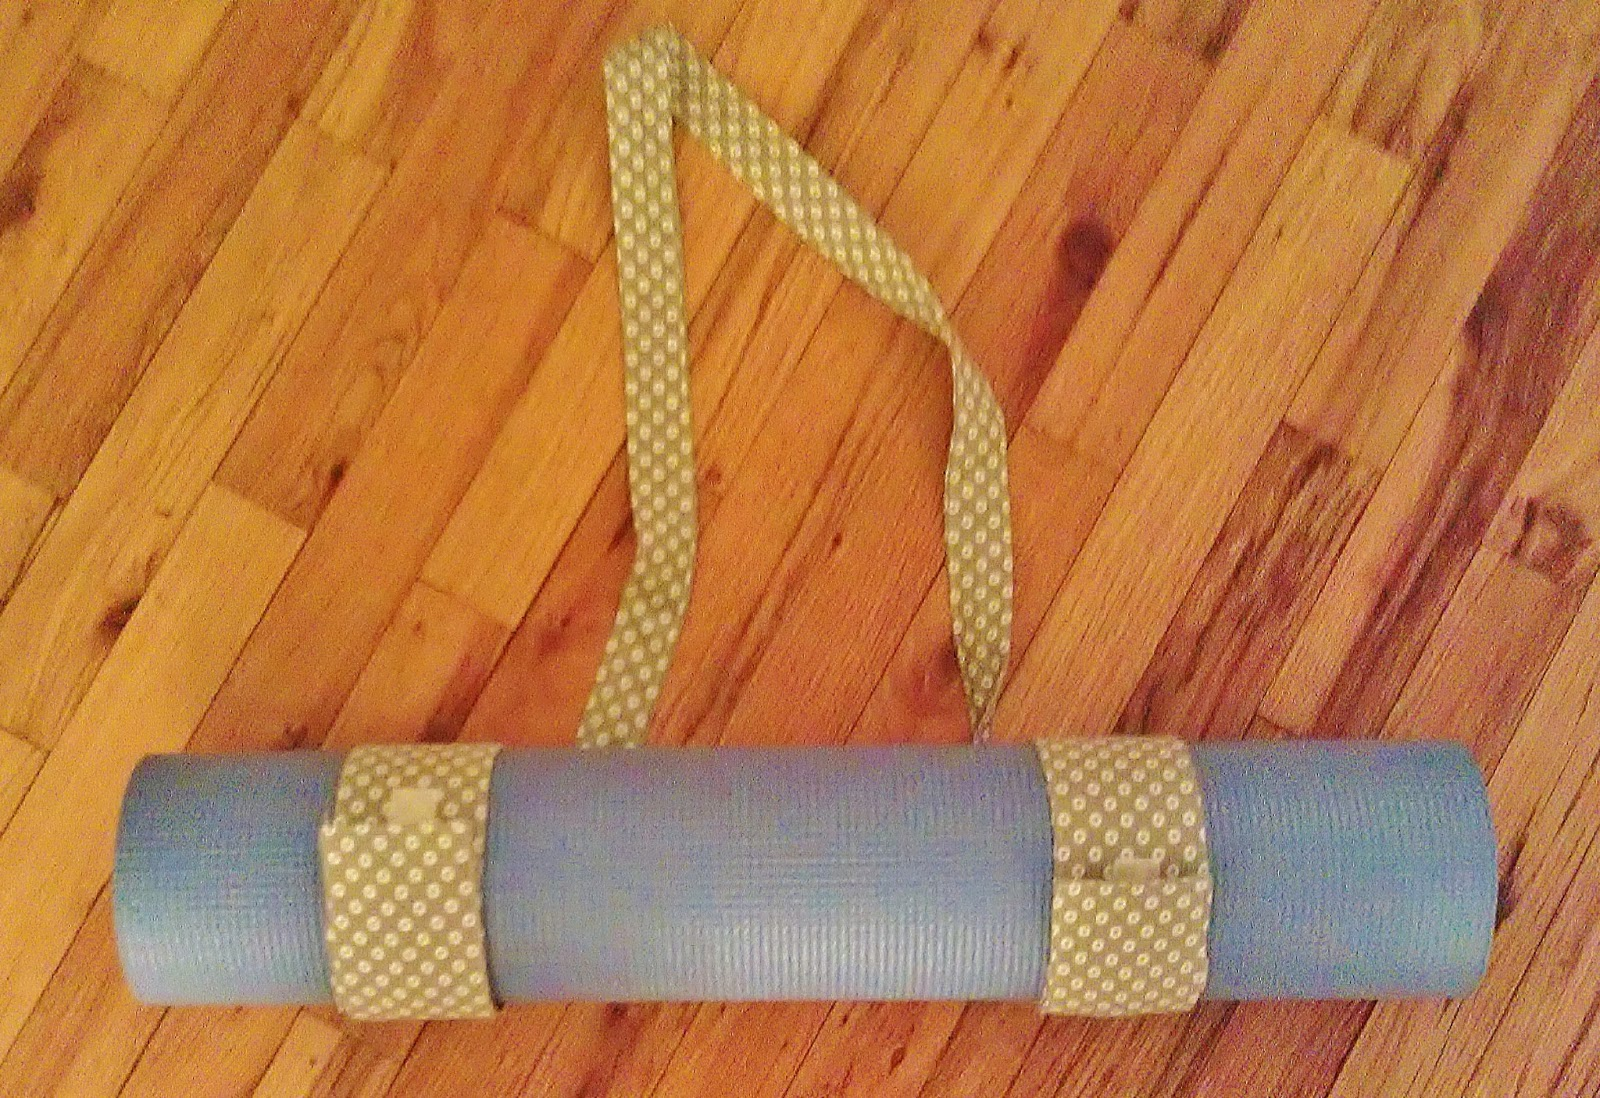 how to attach mats together to make a long mat